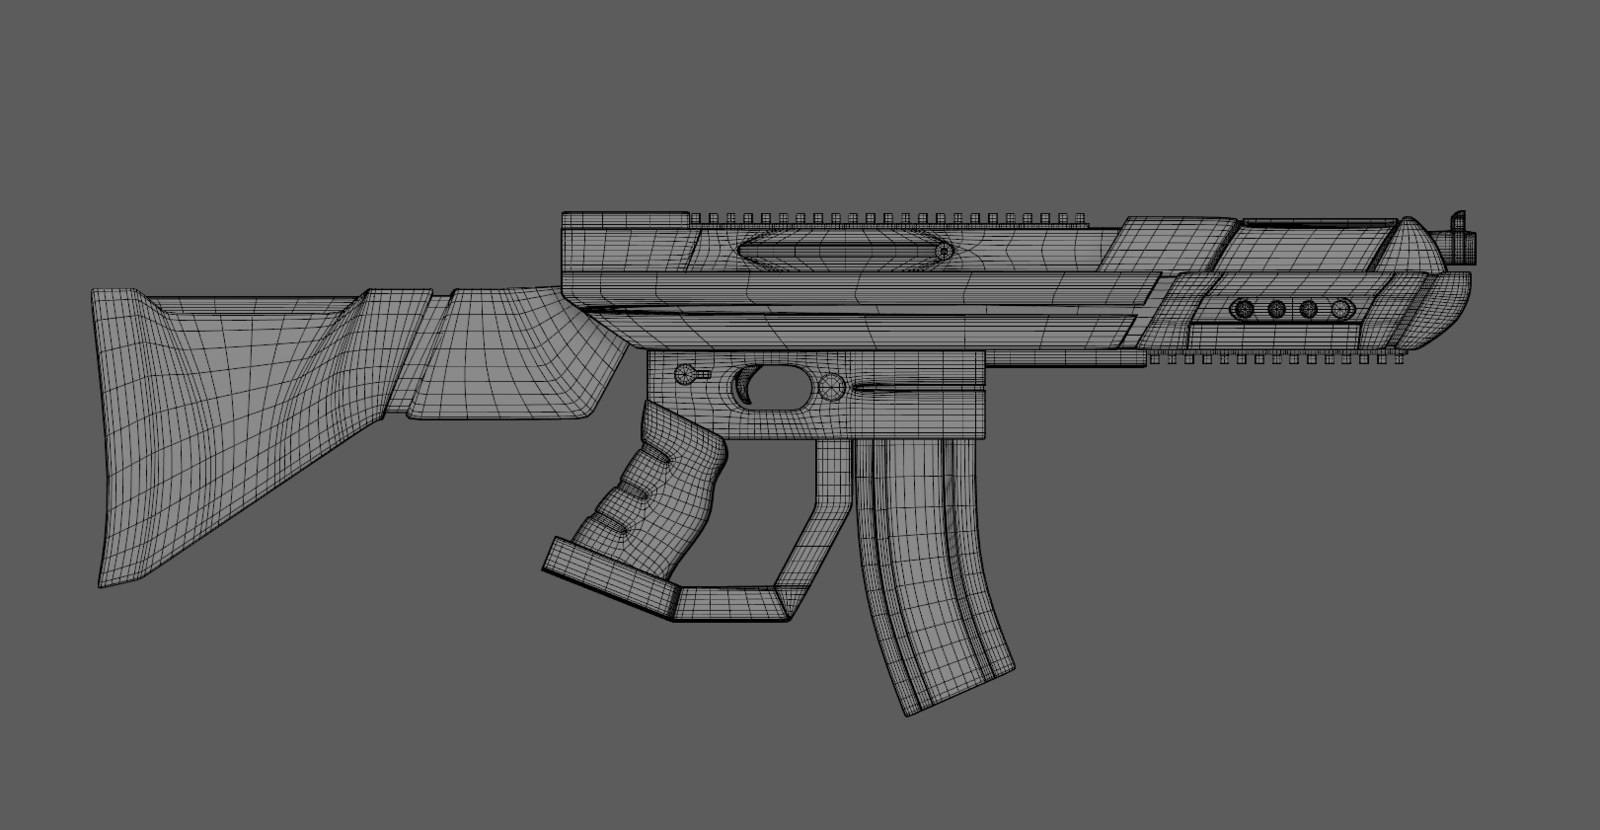 Wireframe of completed rifle model